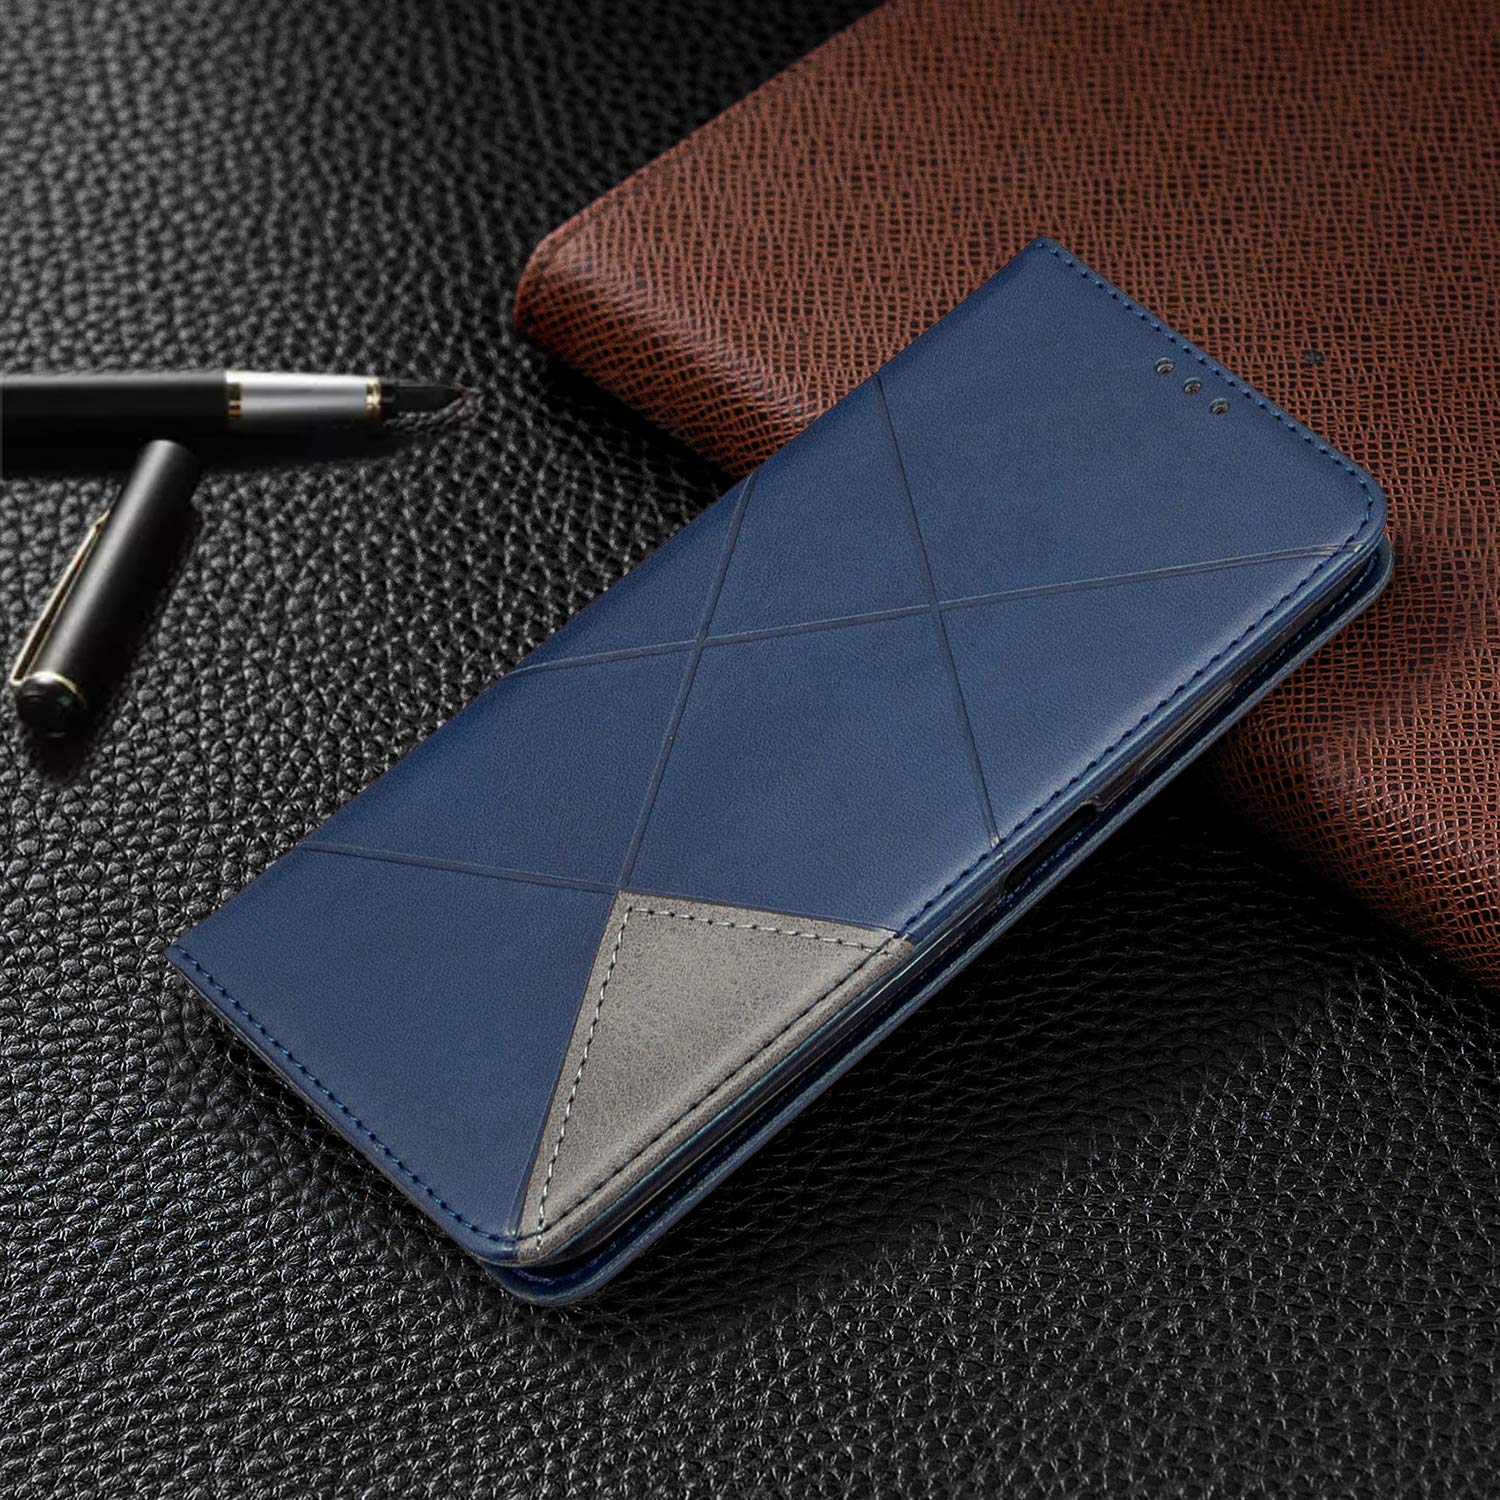 RuiJinHao iPhone7 /& iPhone8 Flip Case Leather Cover Extra-Shockproof Business Cell Phone case Rhombus Pattern 2 Card Slot Magnetic Closure Brown